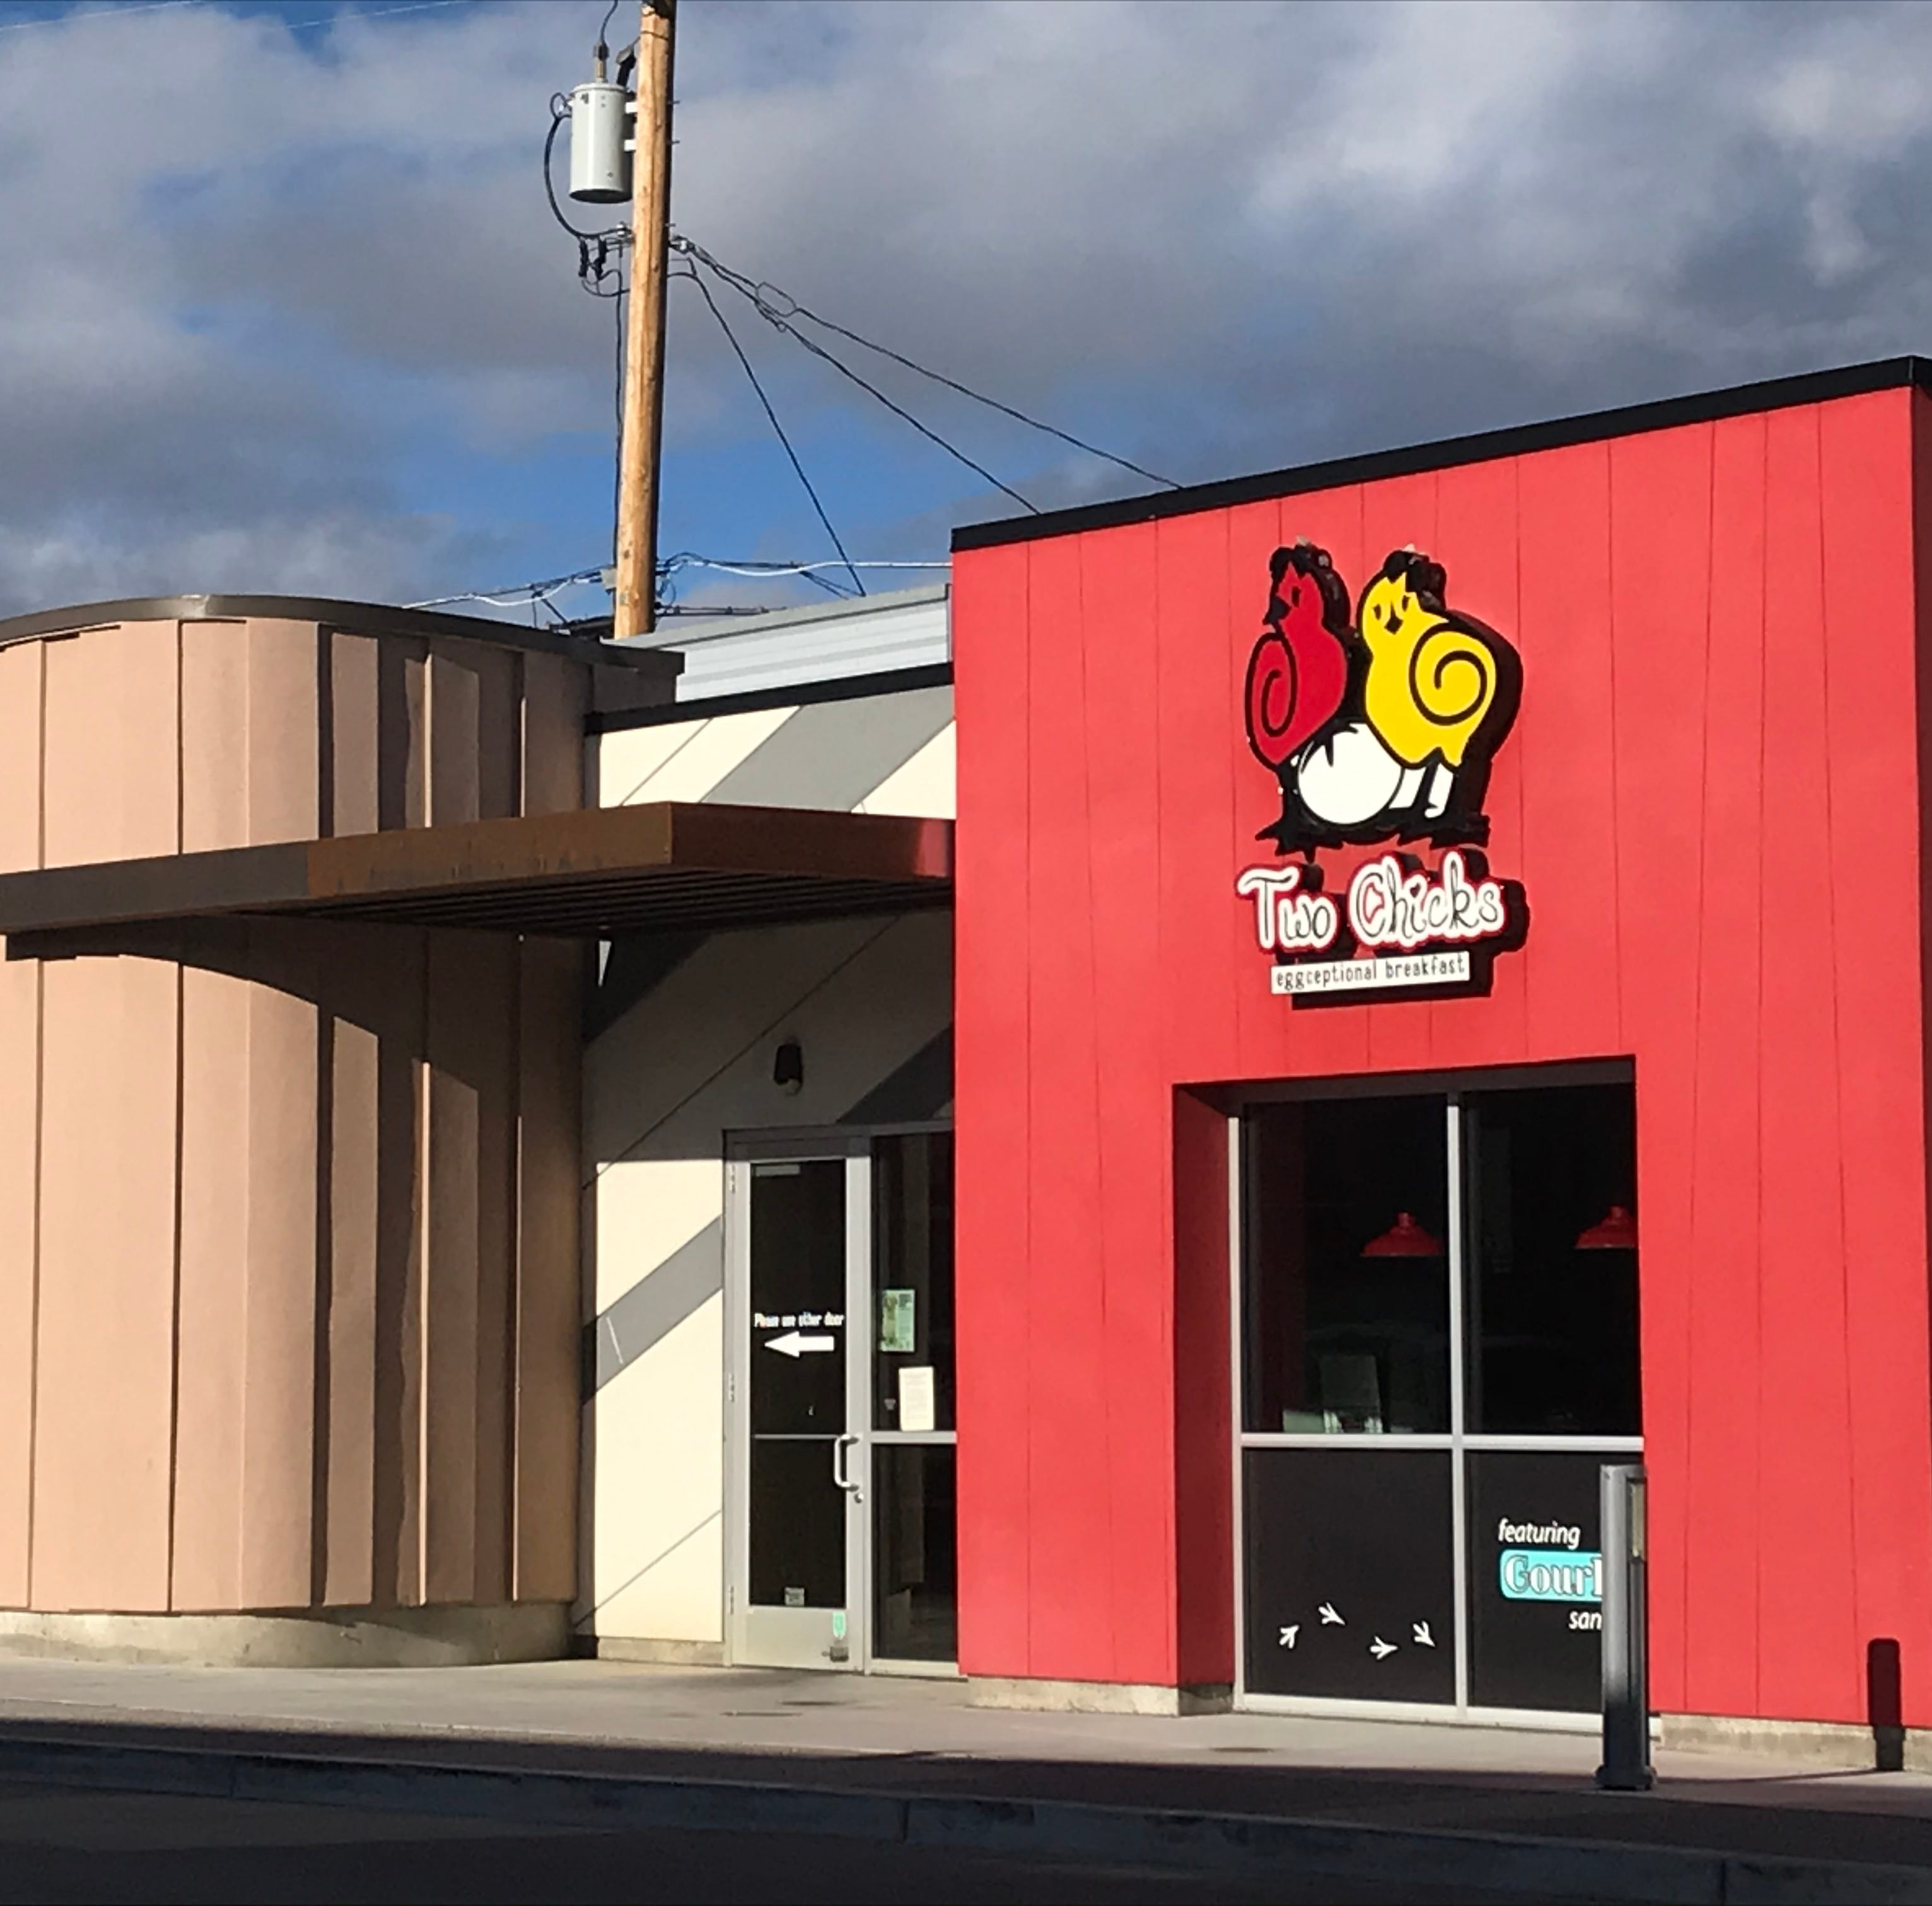 2nd Two Chicks leads 10 new and upcoming Reno-Sparks restaurants